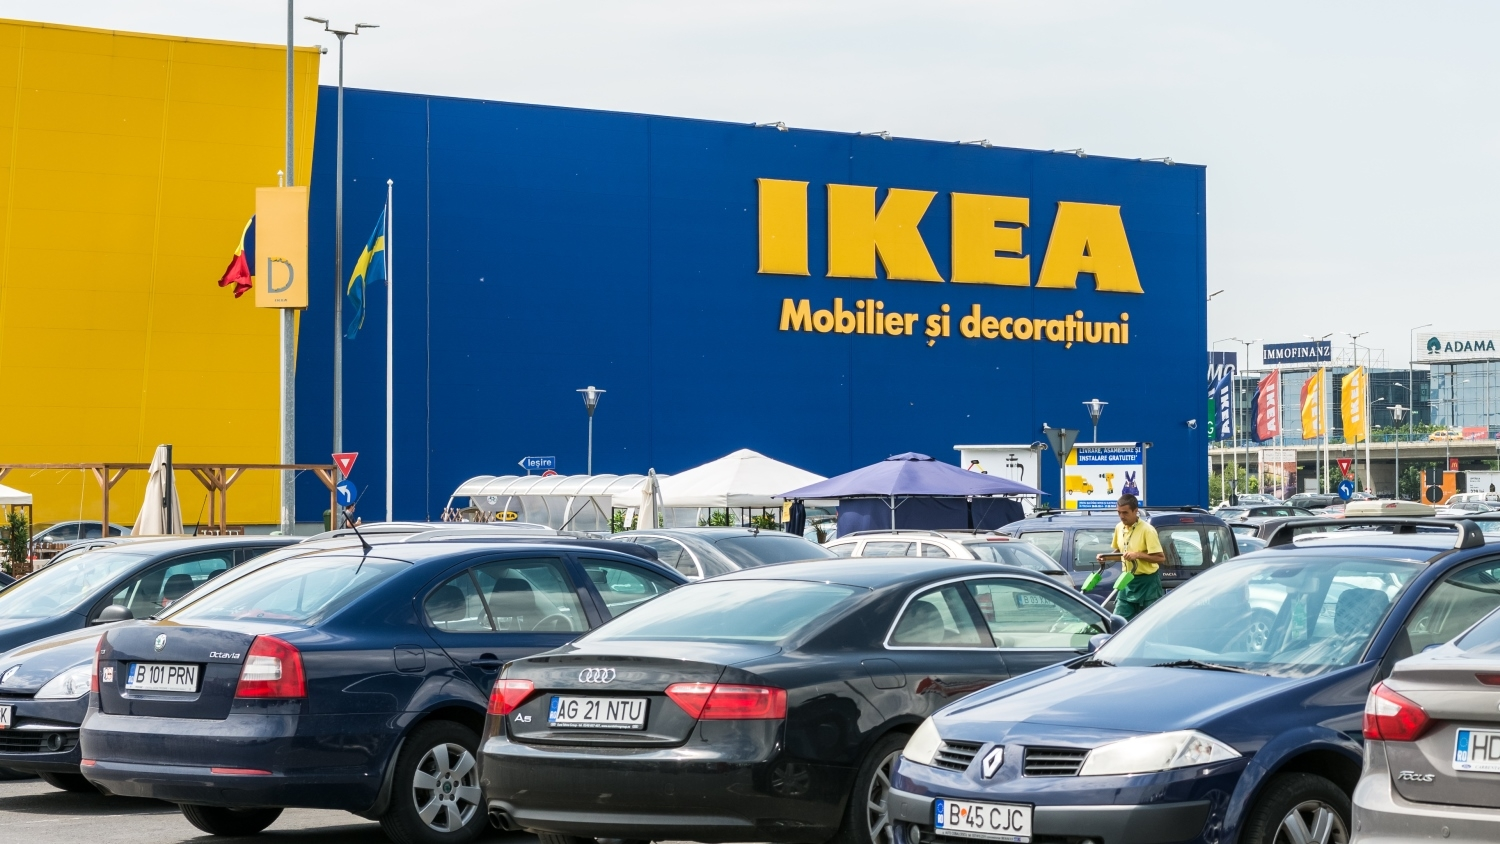 ikea starts construction on second romanian store property forum. Black Bedroom Furniture Sets. Home Design Ideas